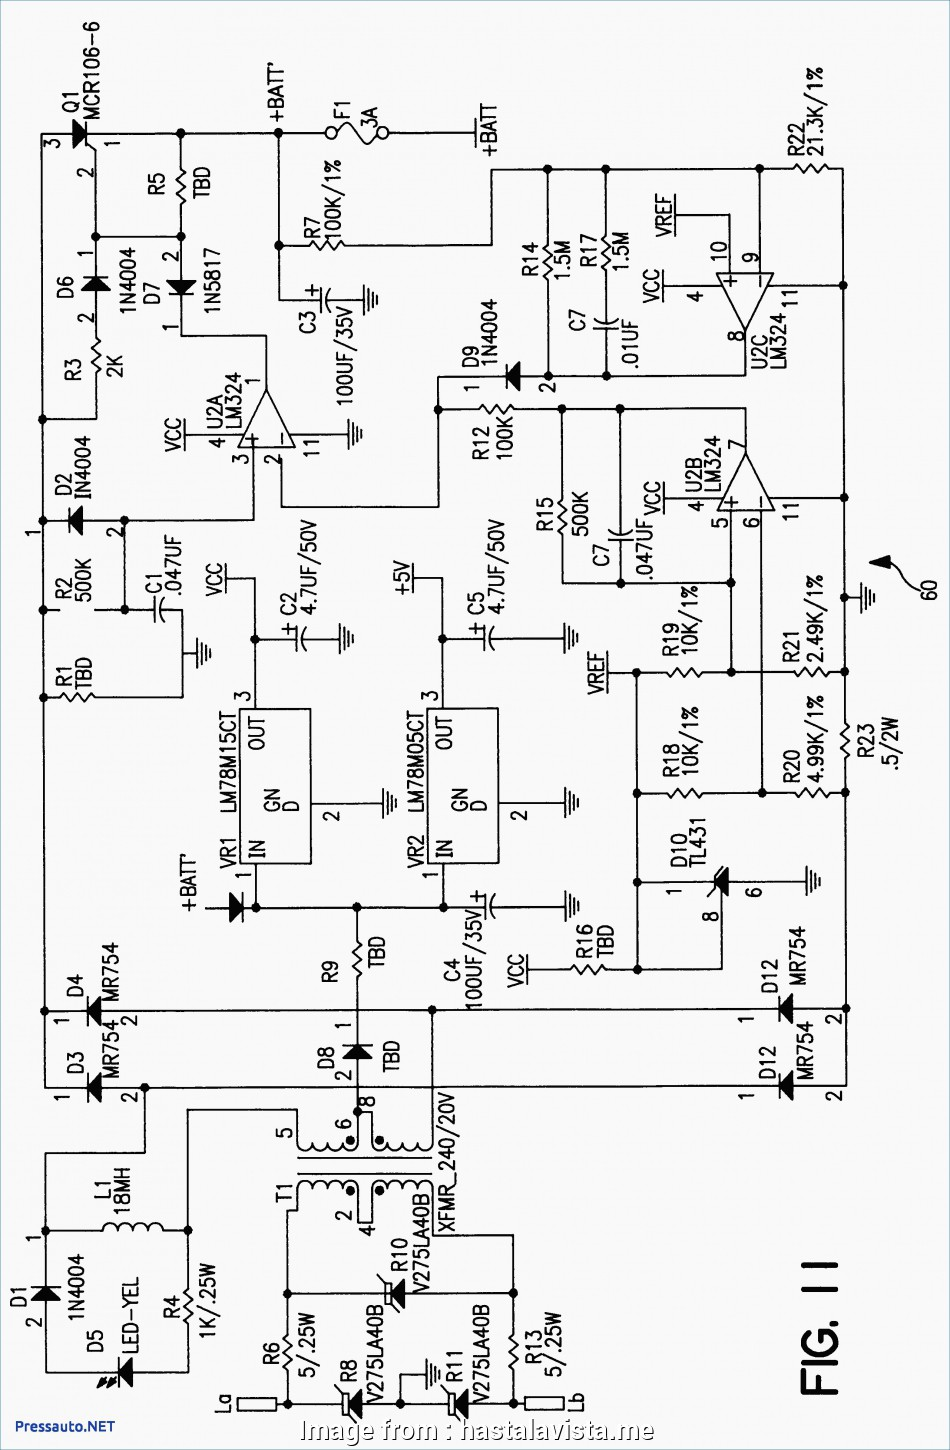 Wiring A Transfer Switch Diagram Top Home Generator